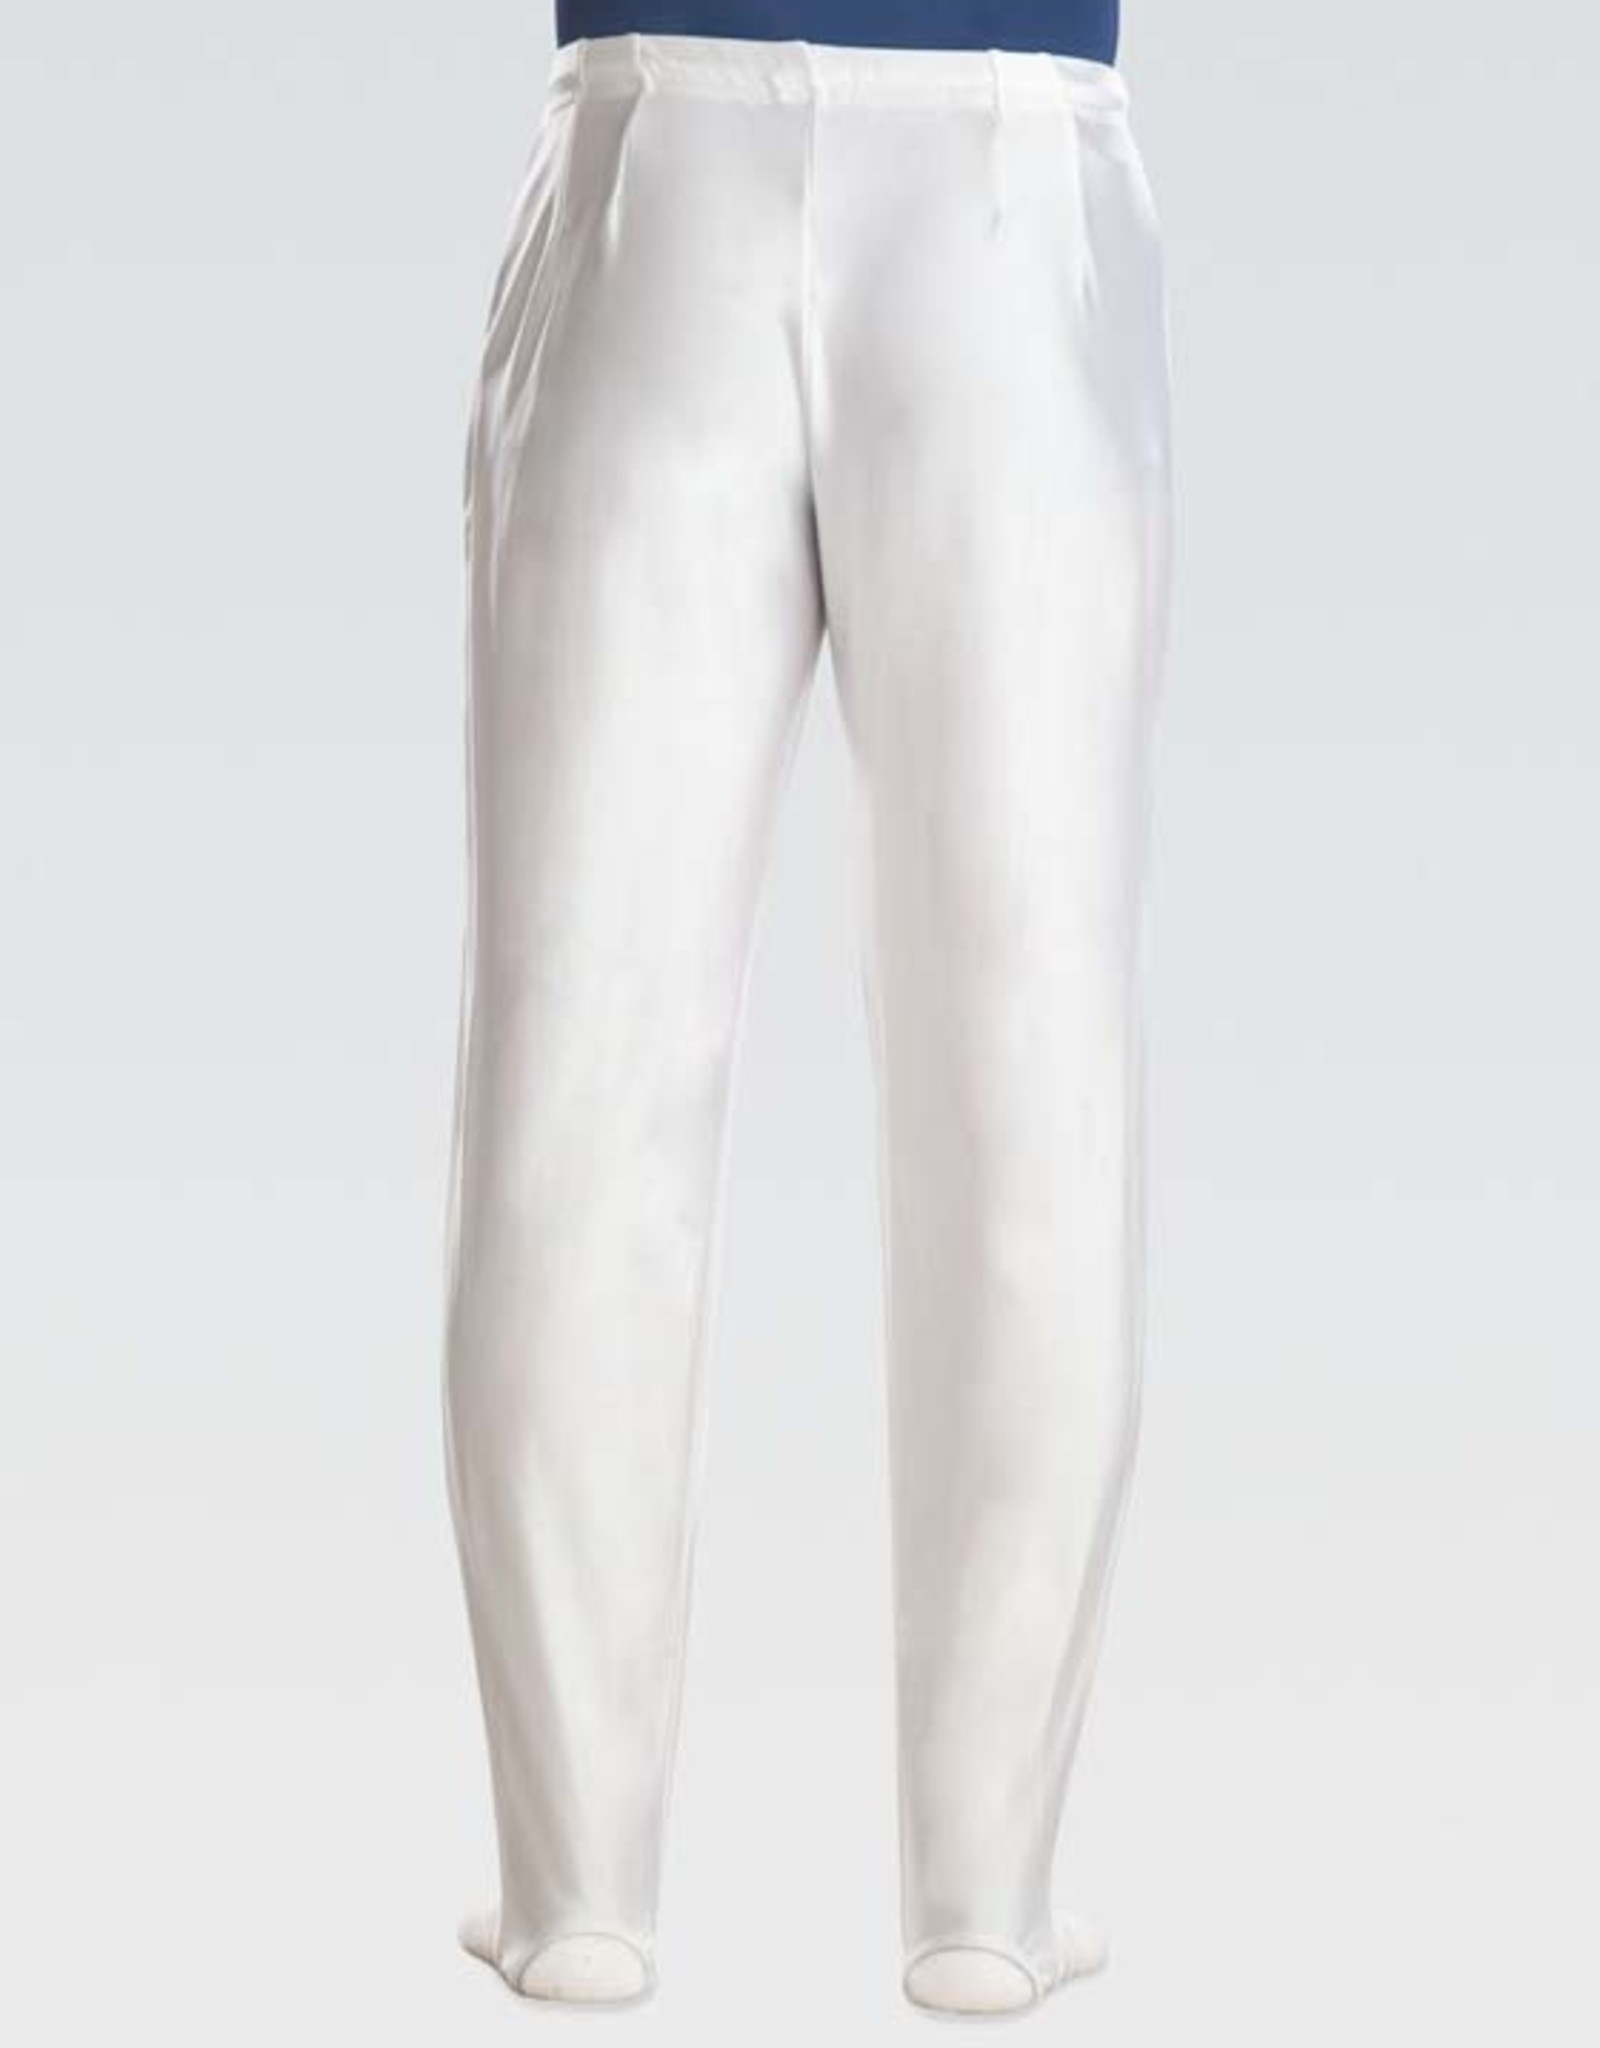 GK Elite 1845M - WHITE COMPETITION PANTS